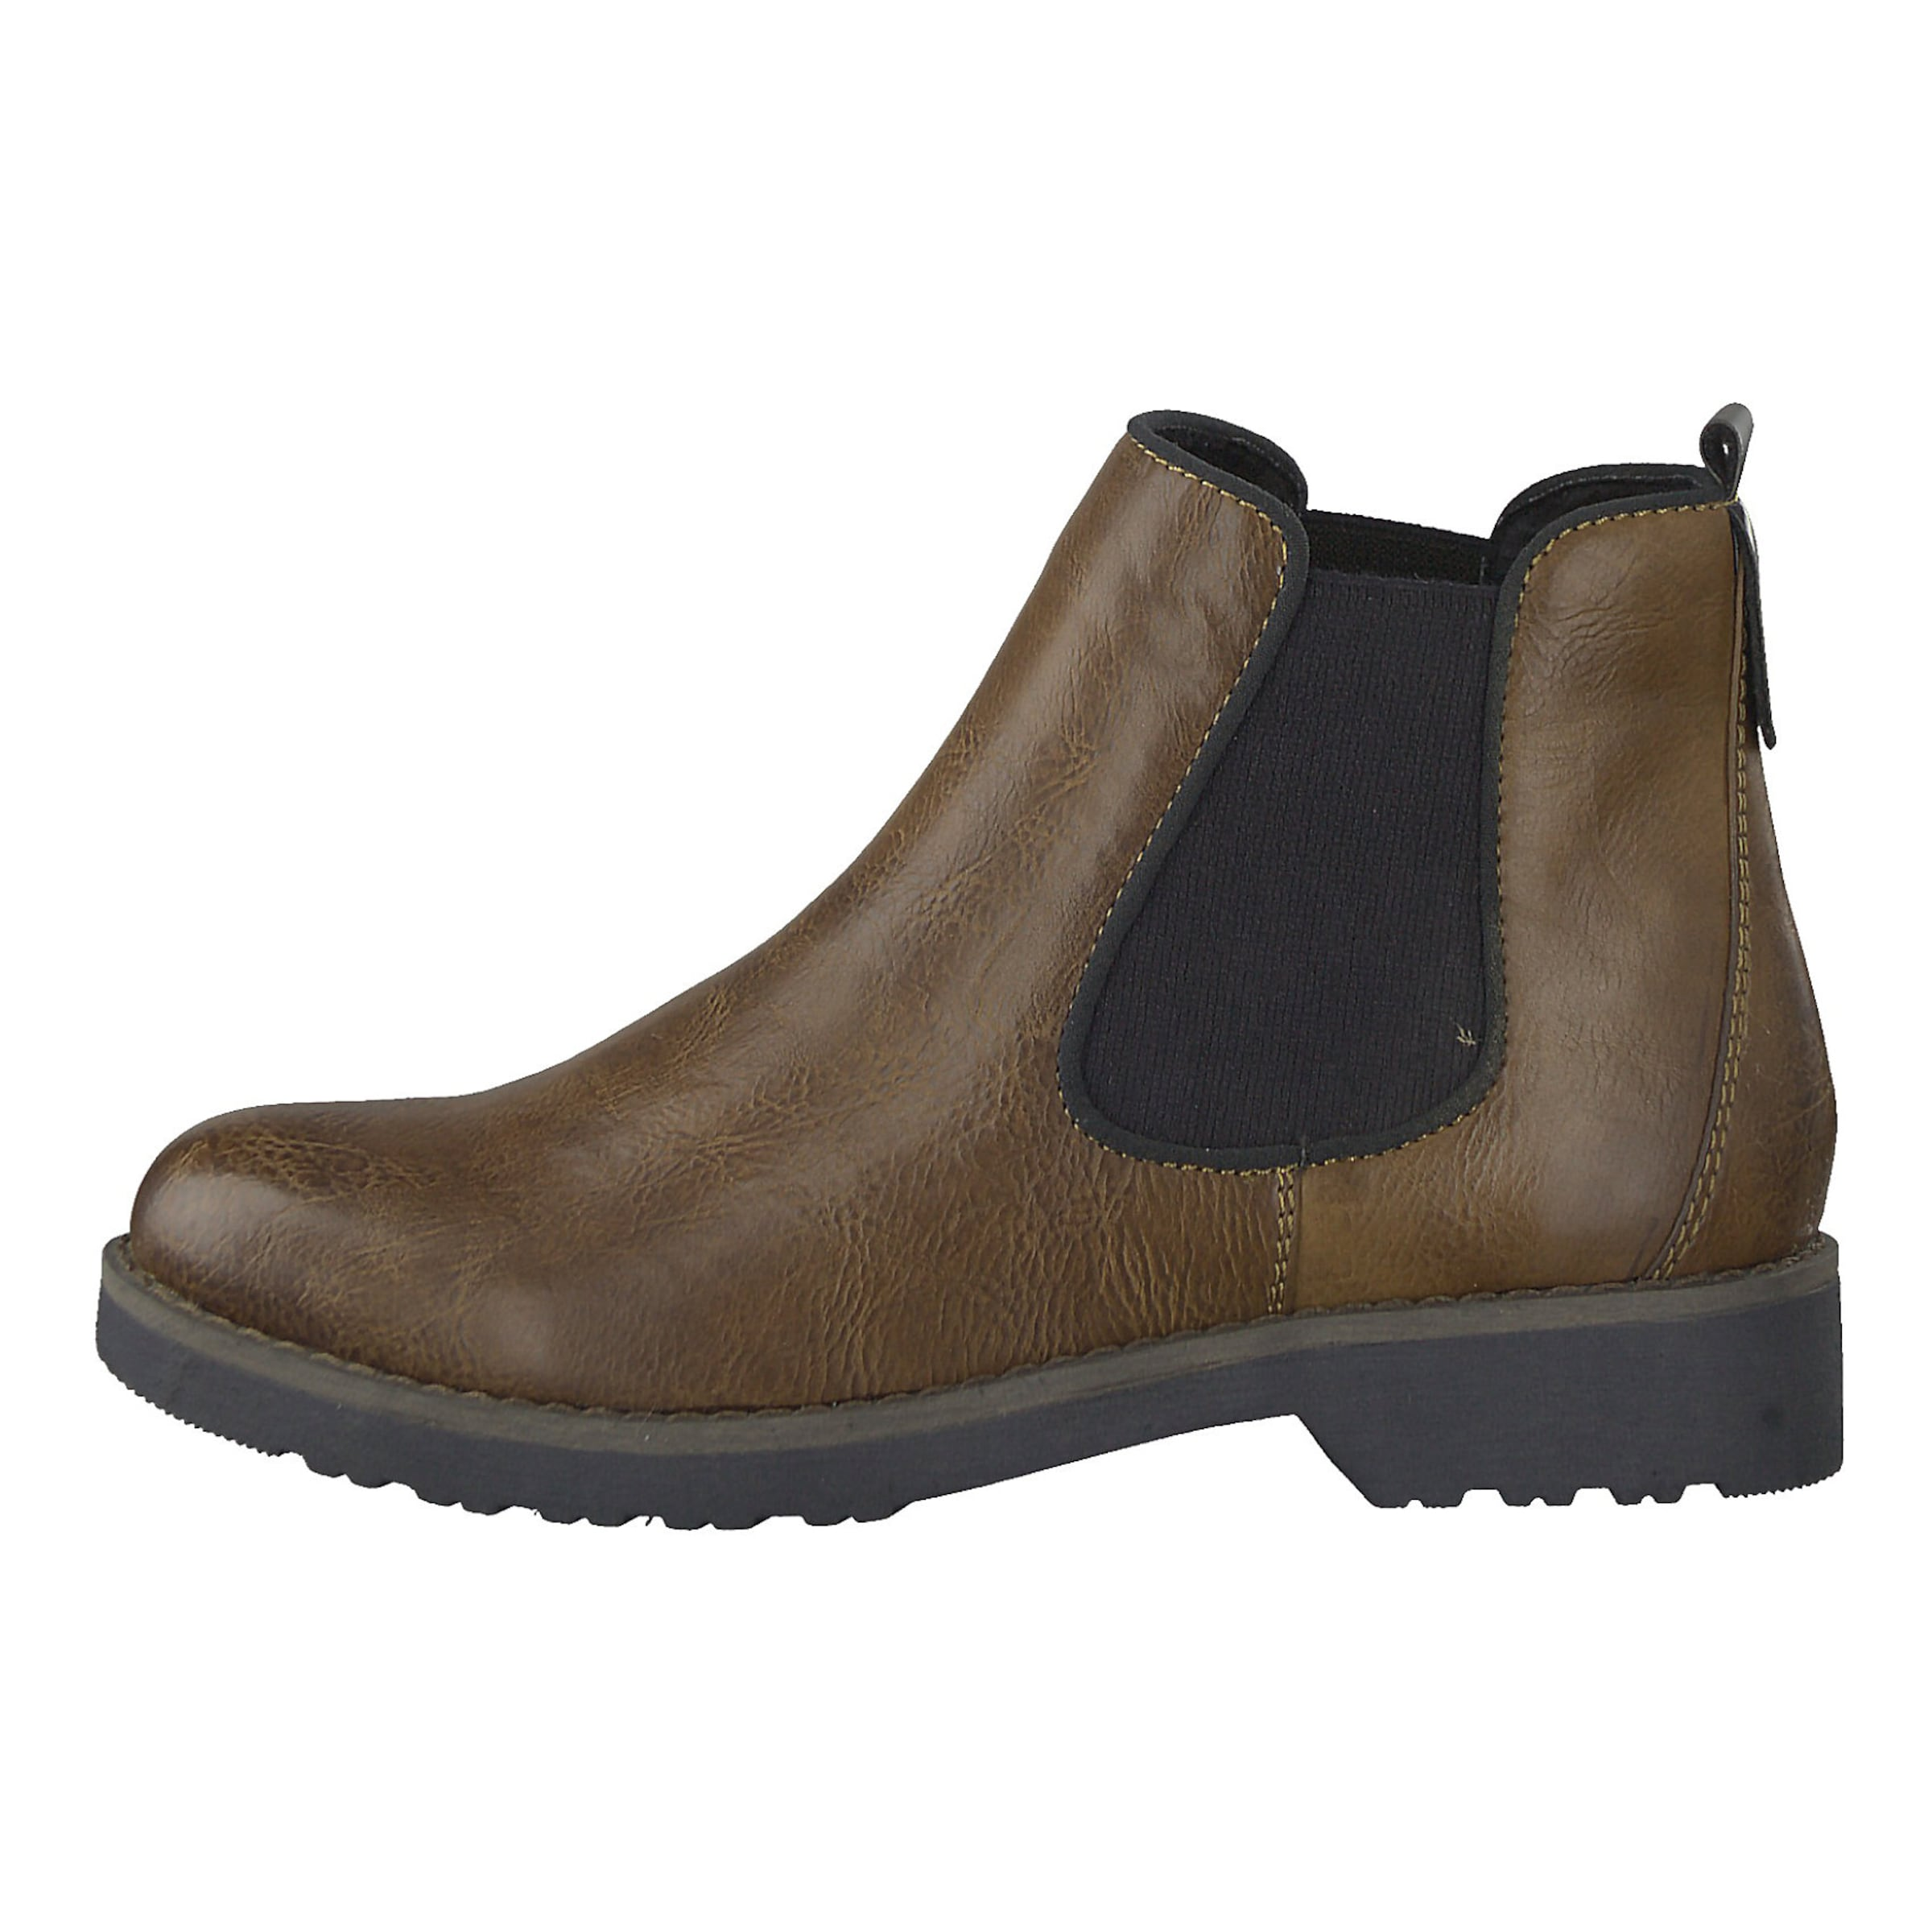 MARCO TOZZI Material Stiefel 'Feel sonstiges Material TOZZI Großer Rabatt ee0222